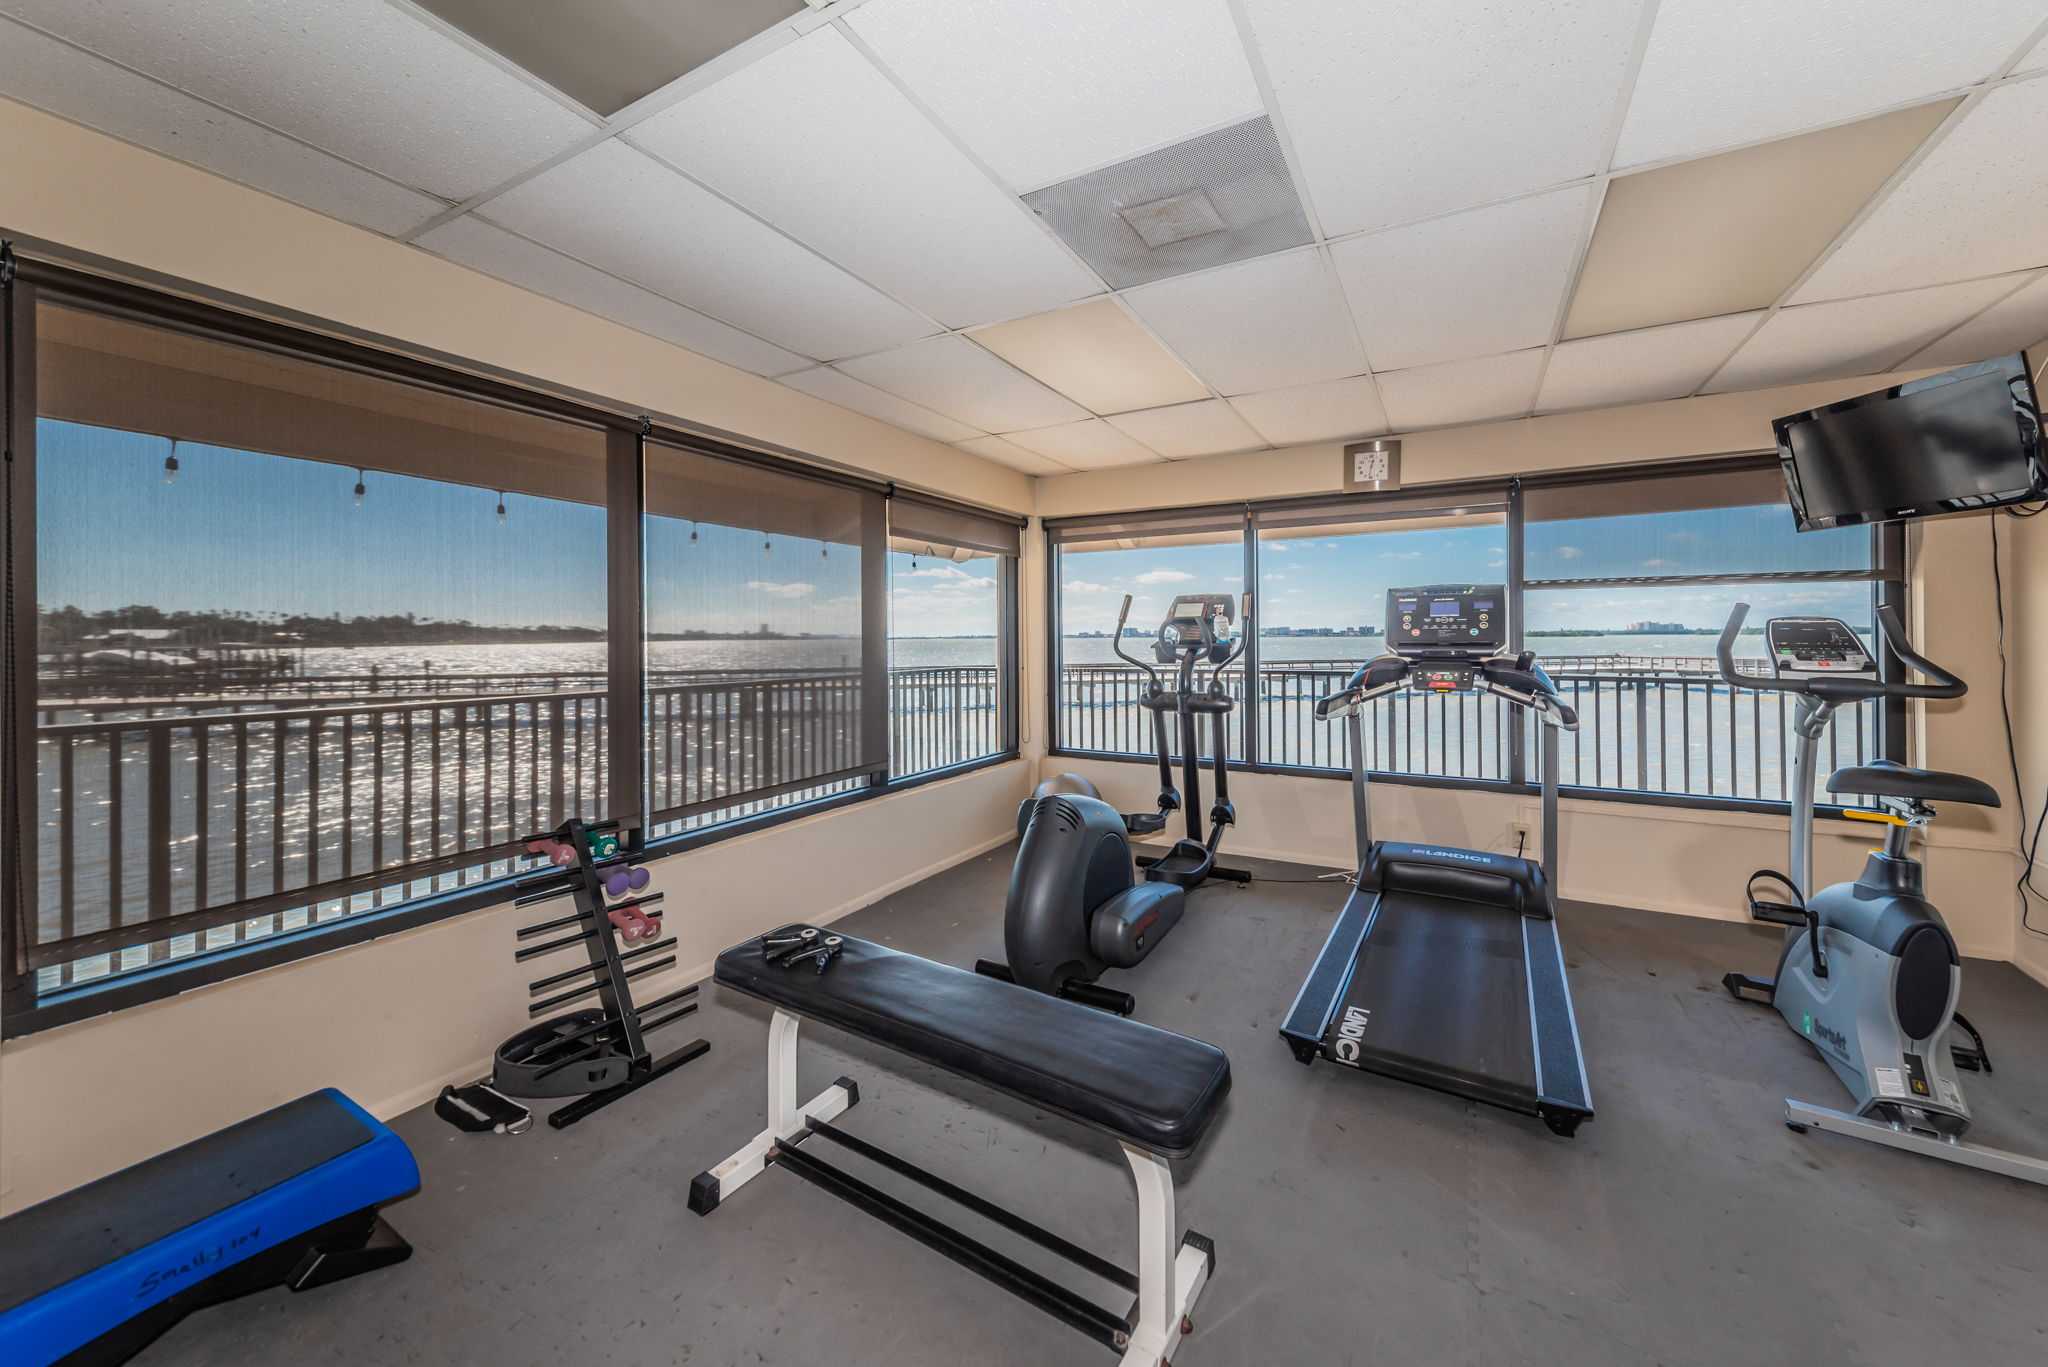 43-Clubhouse Fitness Center